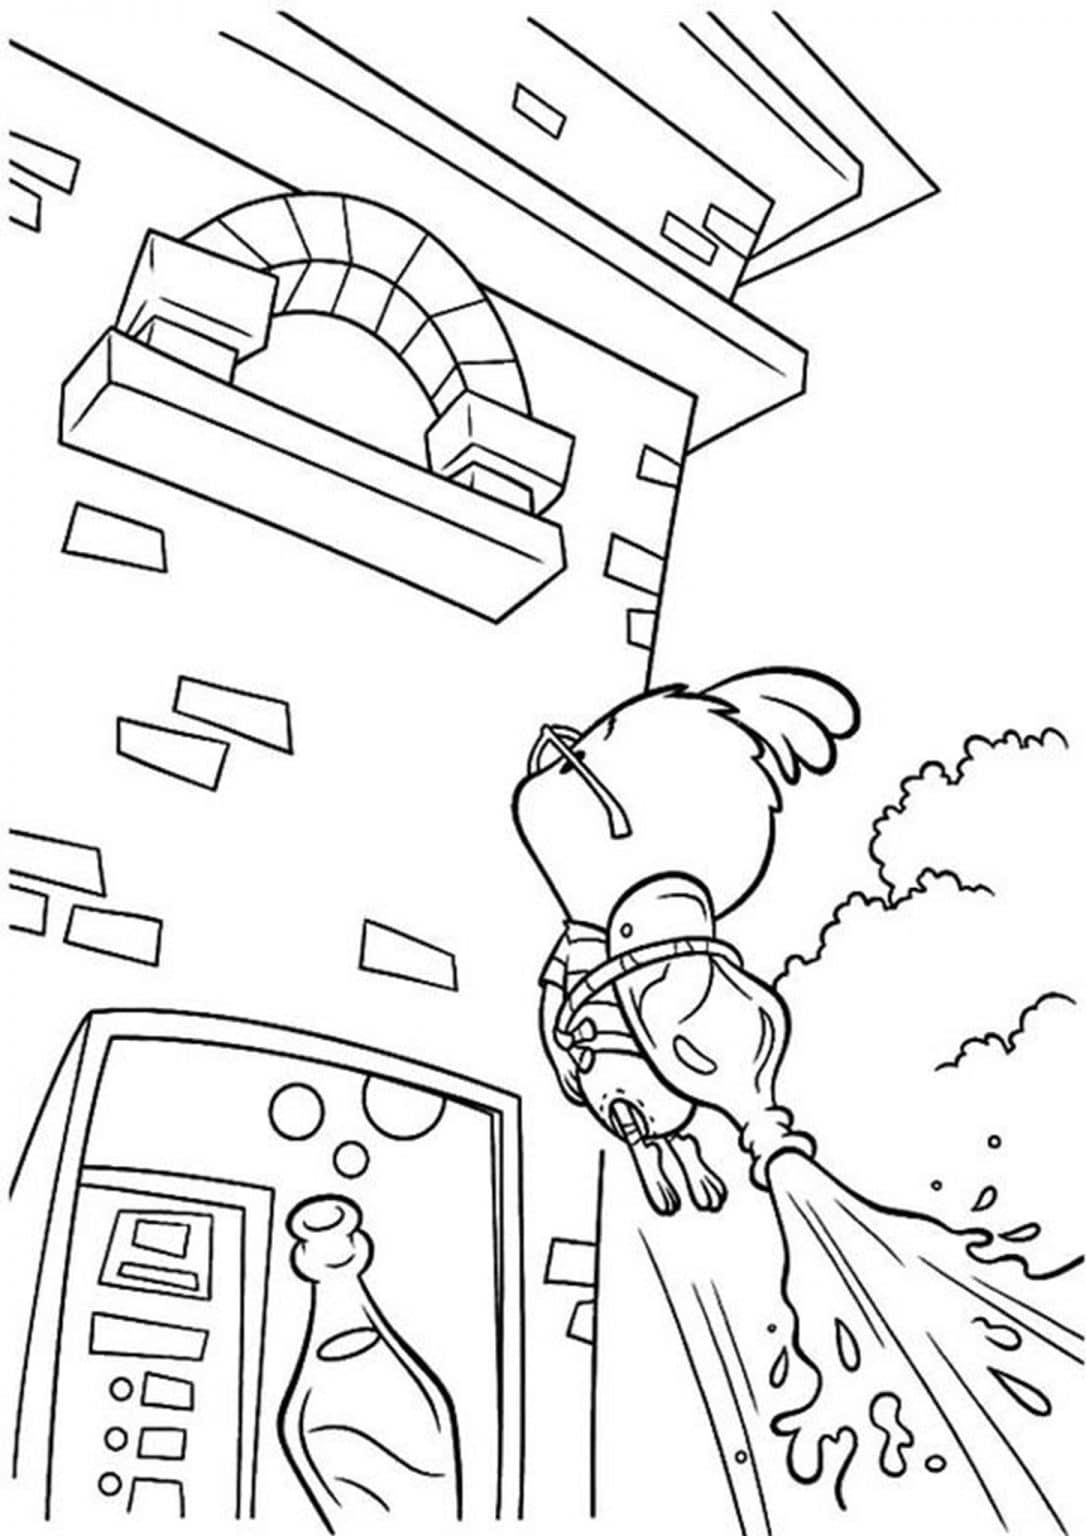 Free Easy To Print Farm Coloring Pages In 2021 Farm Coloring Pages Coloring Pages Chicken Coloring Pages [ 1536 x 1086 Pixel ]